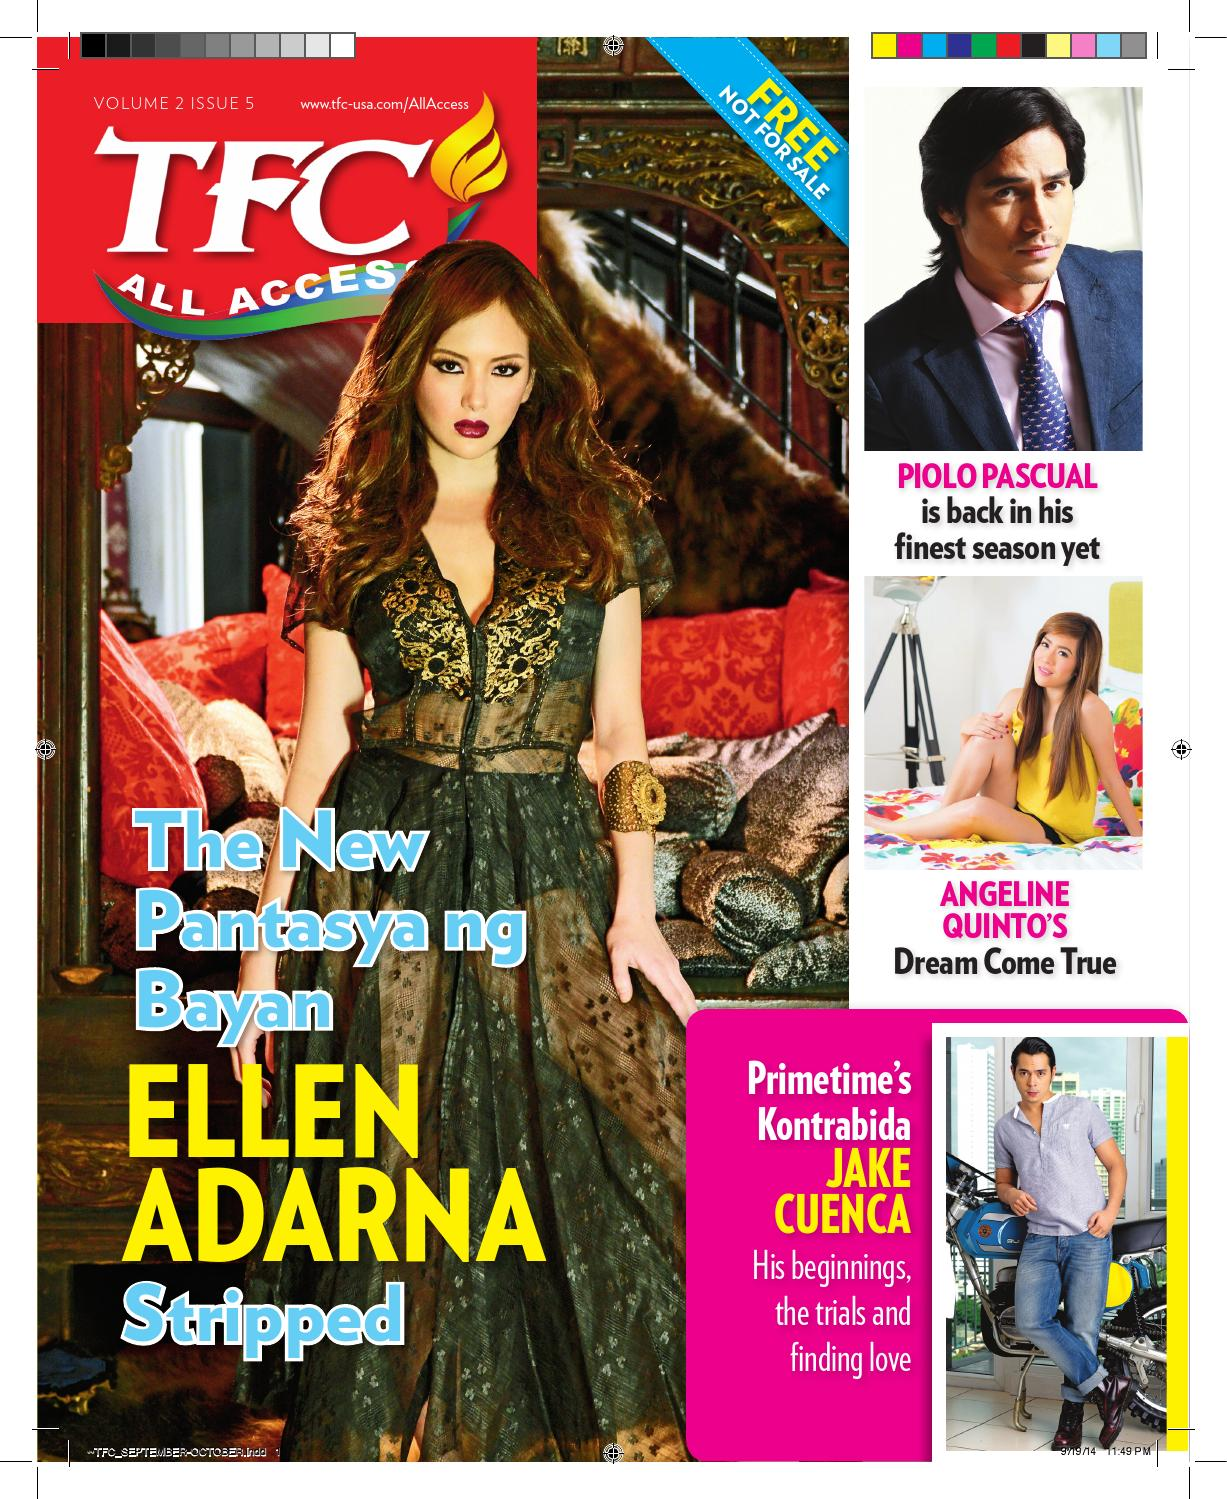 Angeline Quinto Sex Scandal tfc all access vol 2 issue 5tfc all access - issuu